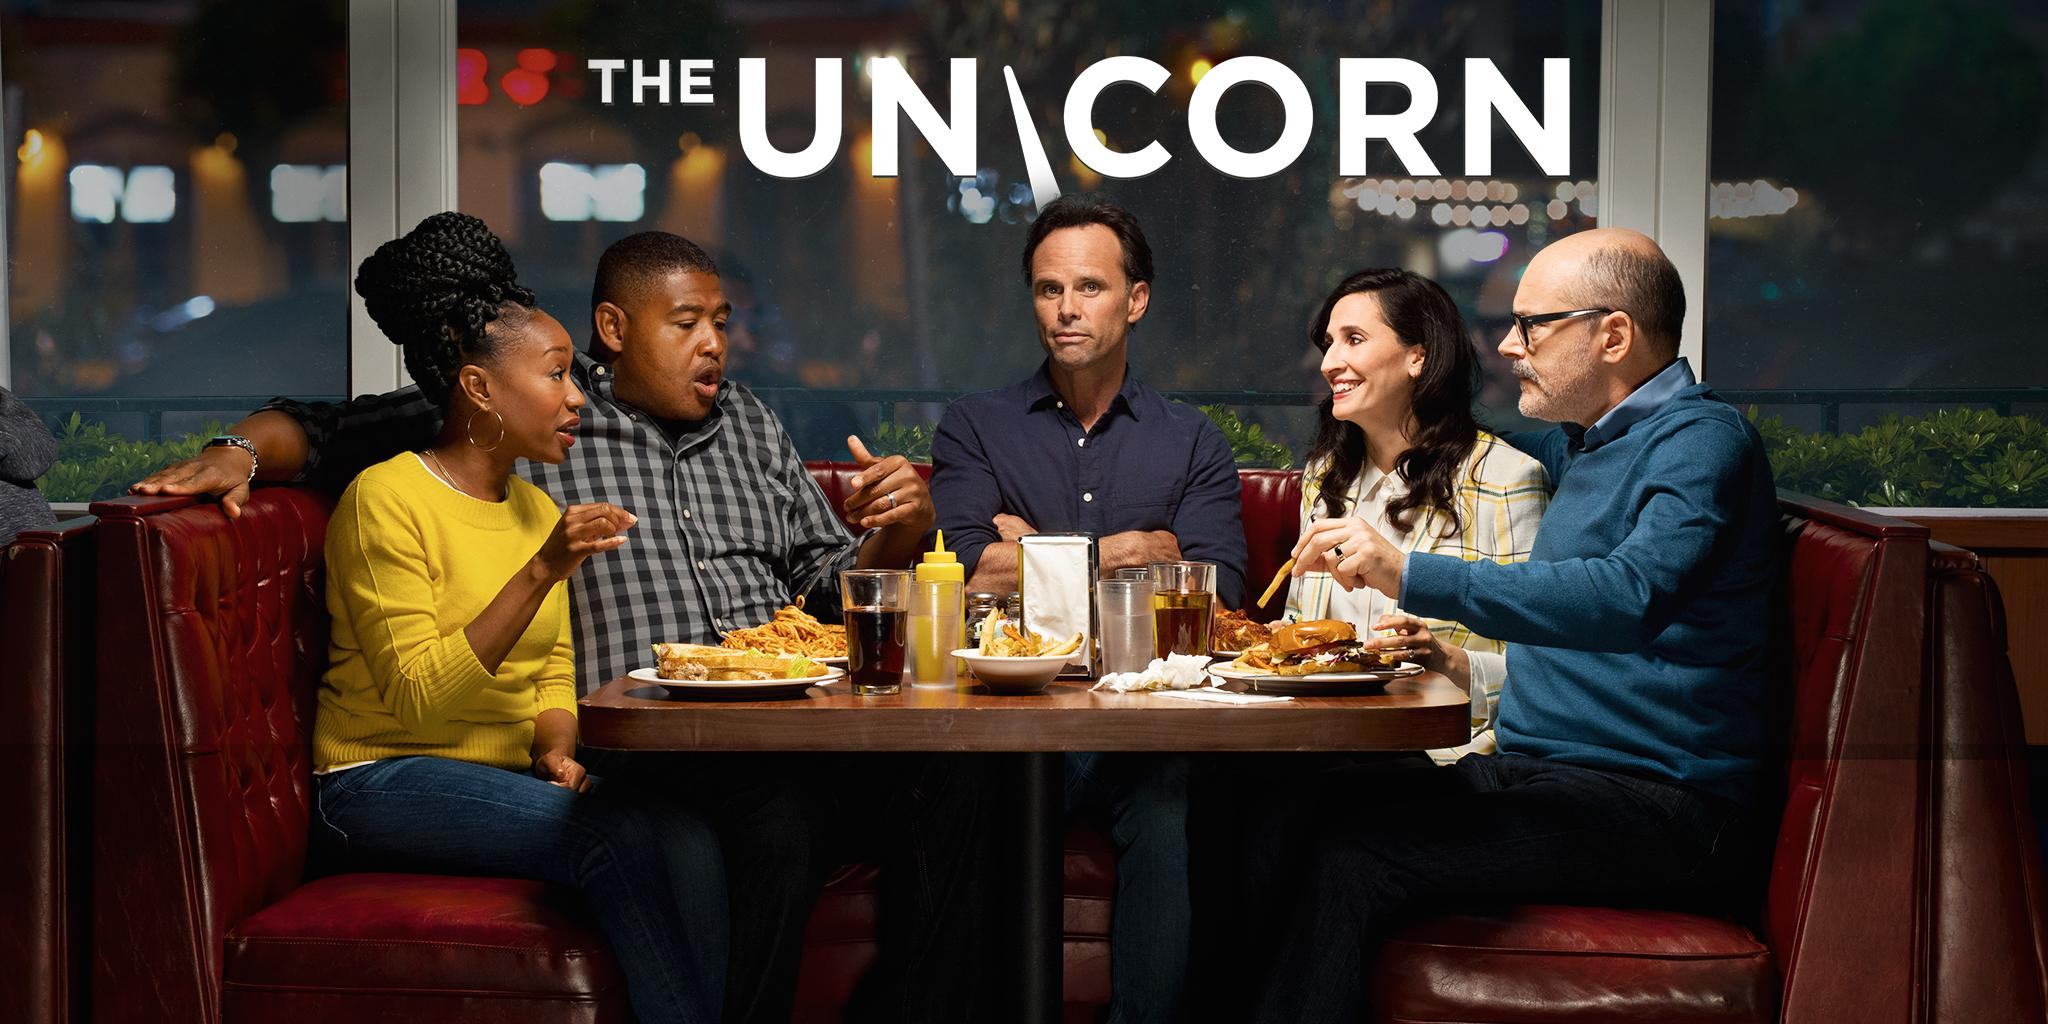 The Unicorn Season 3 Release Date, Cast, Plot Synopsis and Expectations